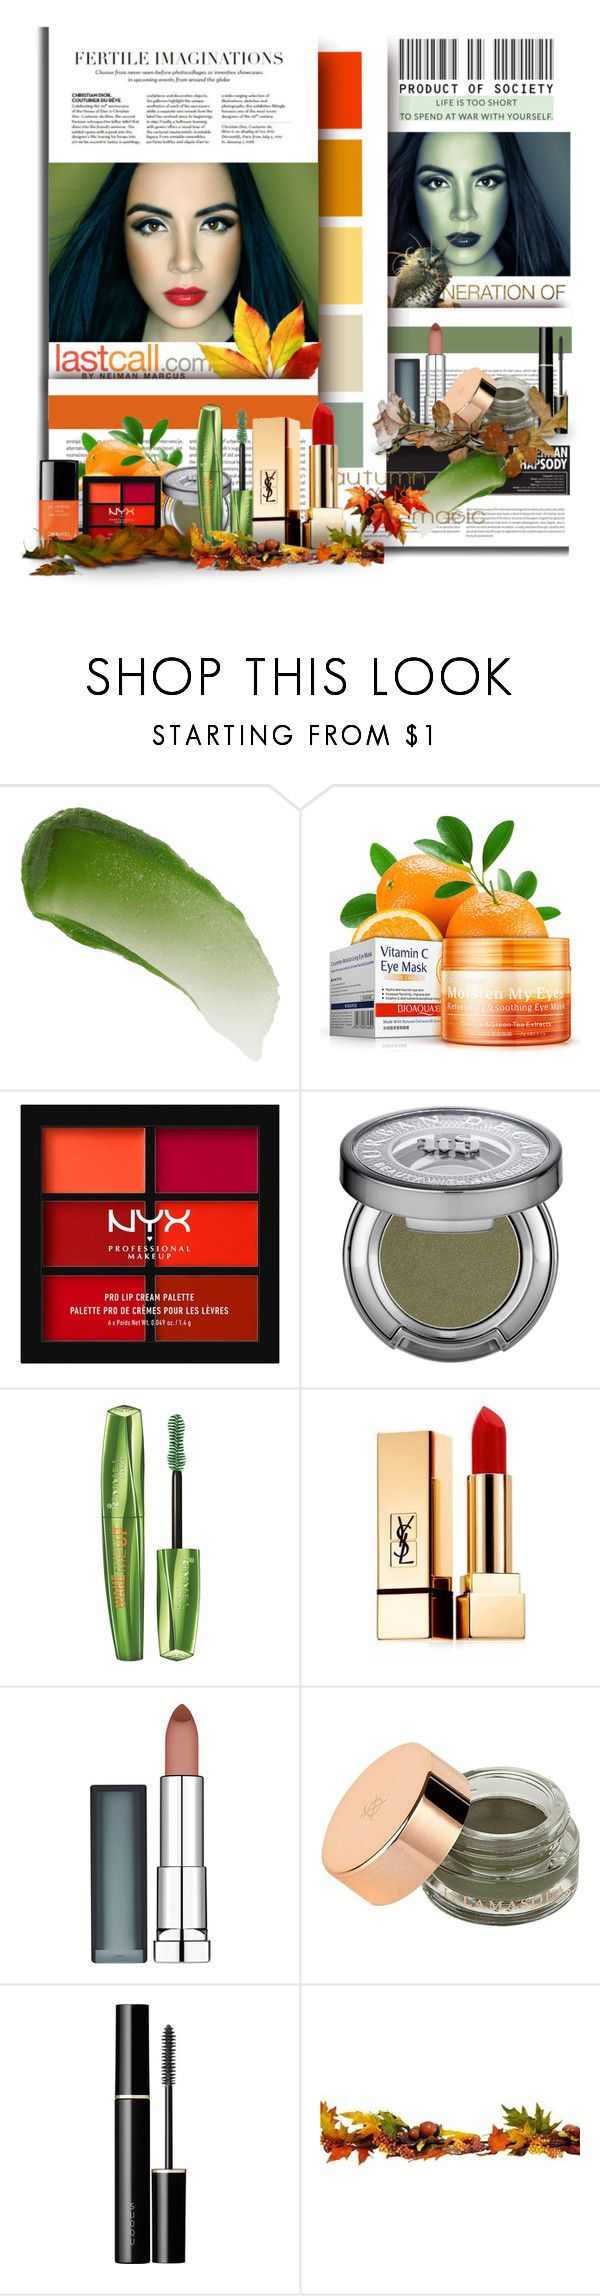 """""""BEAUTY MARK"""" by angelflair ❤ liked on Polyvore featuring beauty, Vila Milano, Oris, Lipstick Queen, NYX, Urban Decay, Rimmel, Yves Saint Laurent, Maybelline and Illamasqua"""